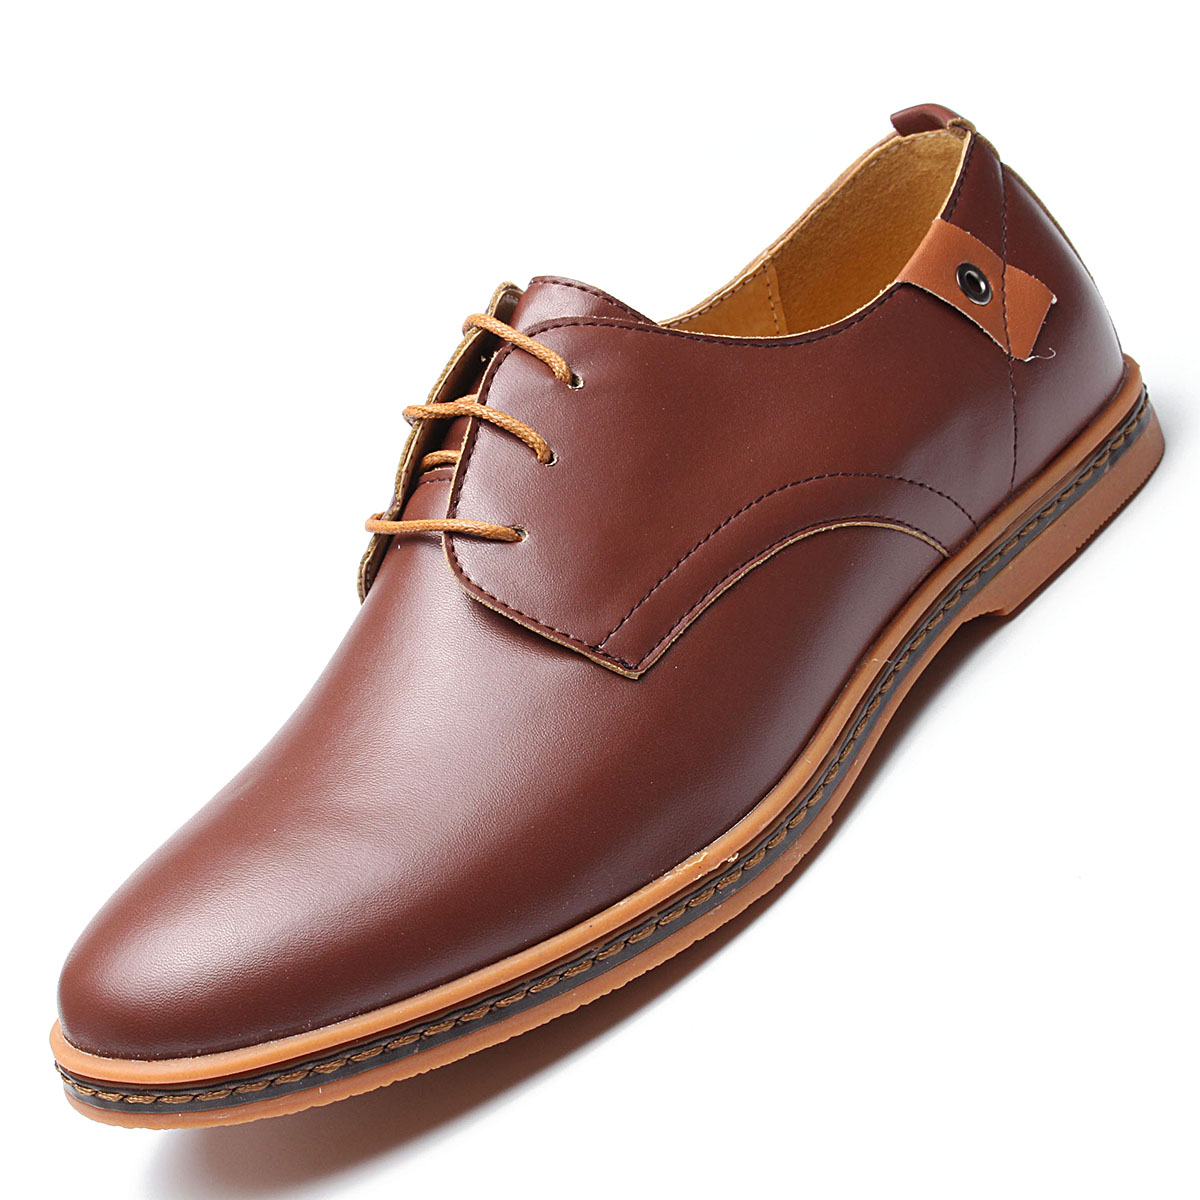 Shop online for Men's Oxfords & Derby Shoes at jelly555.ml Find wingtips, cap toe & plain toe shoes. Free Shipping. Free Returns. All the time.